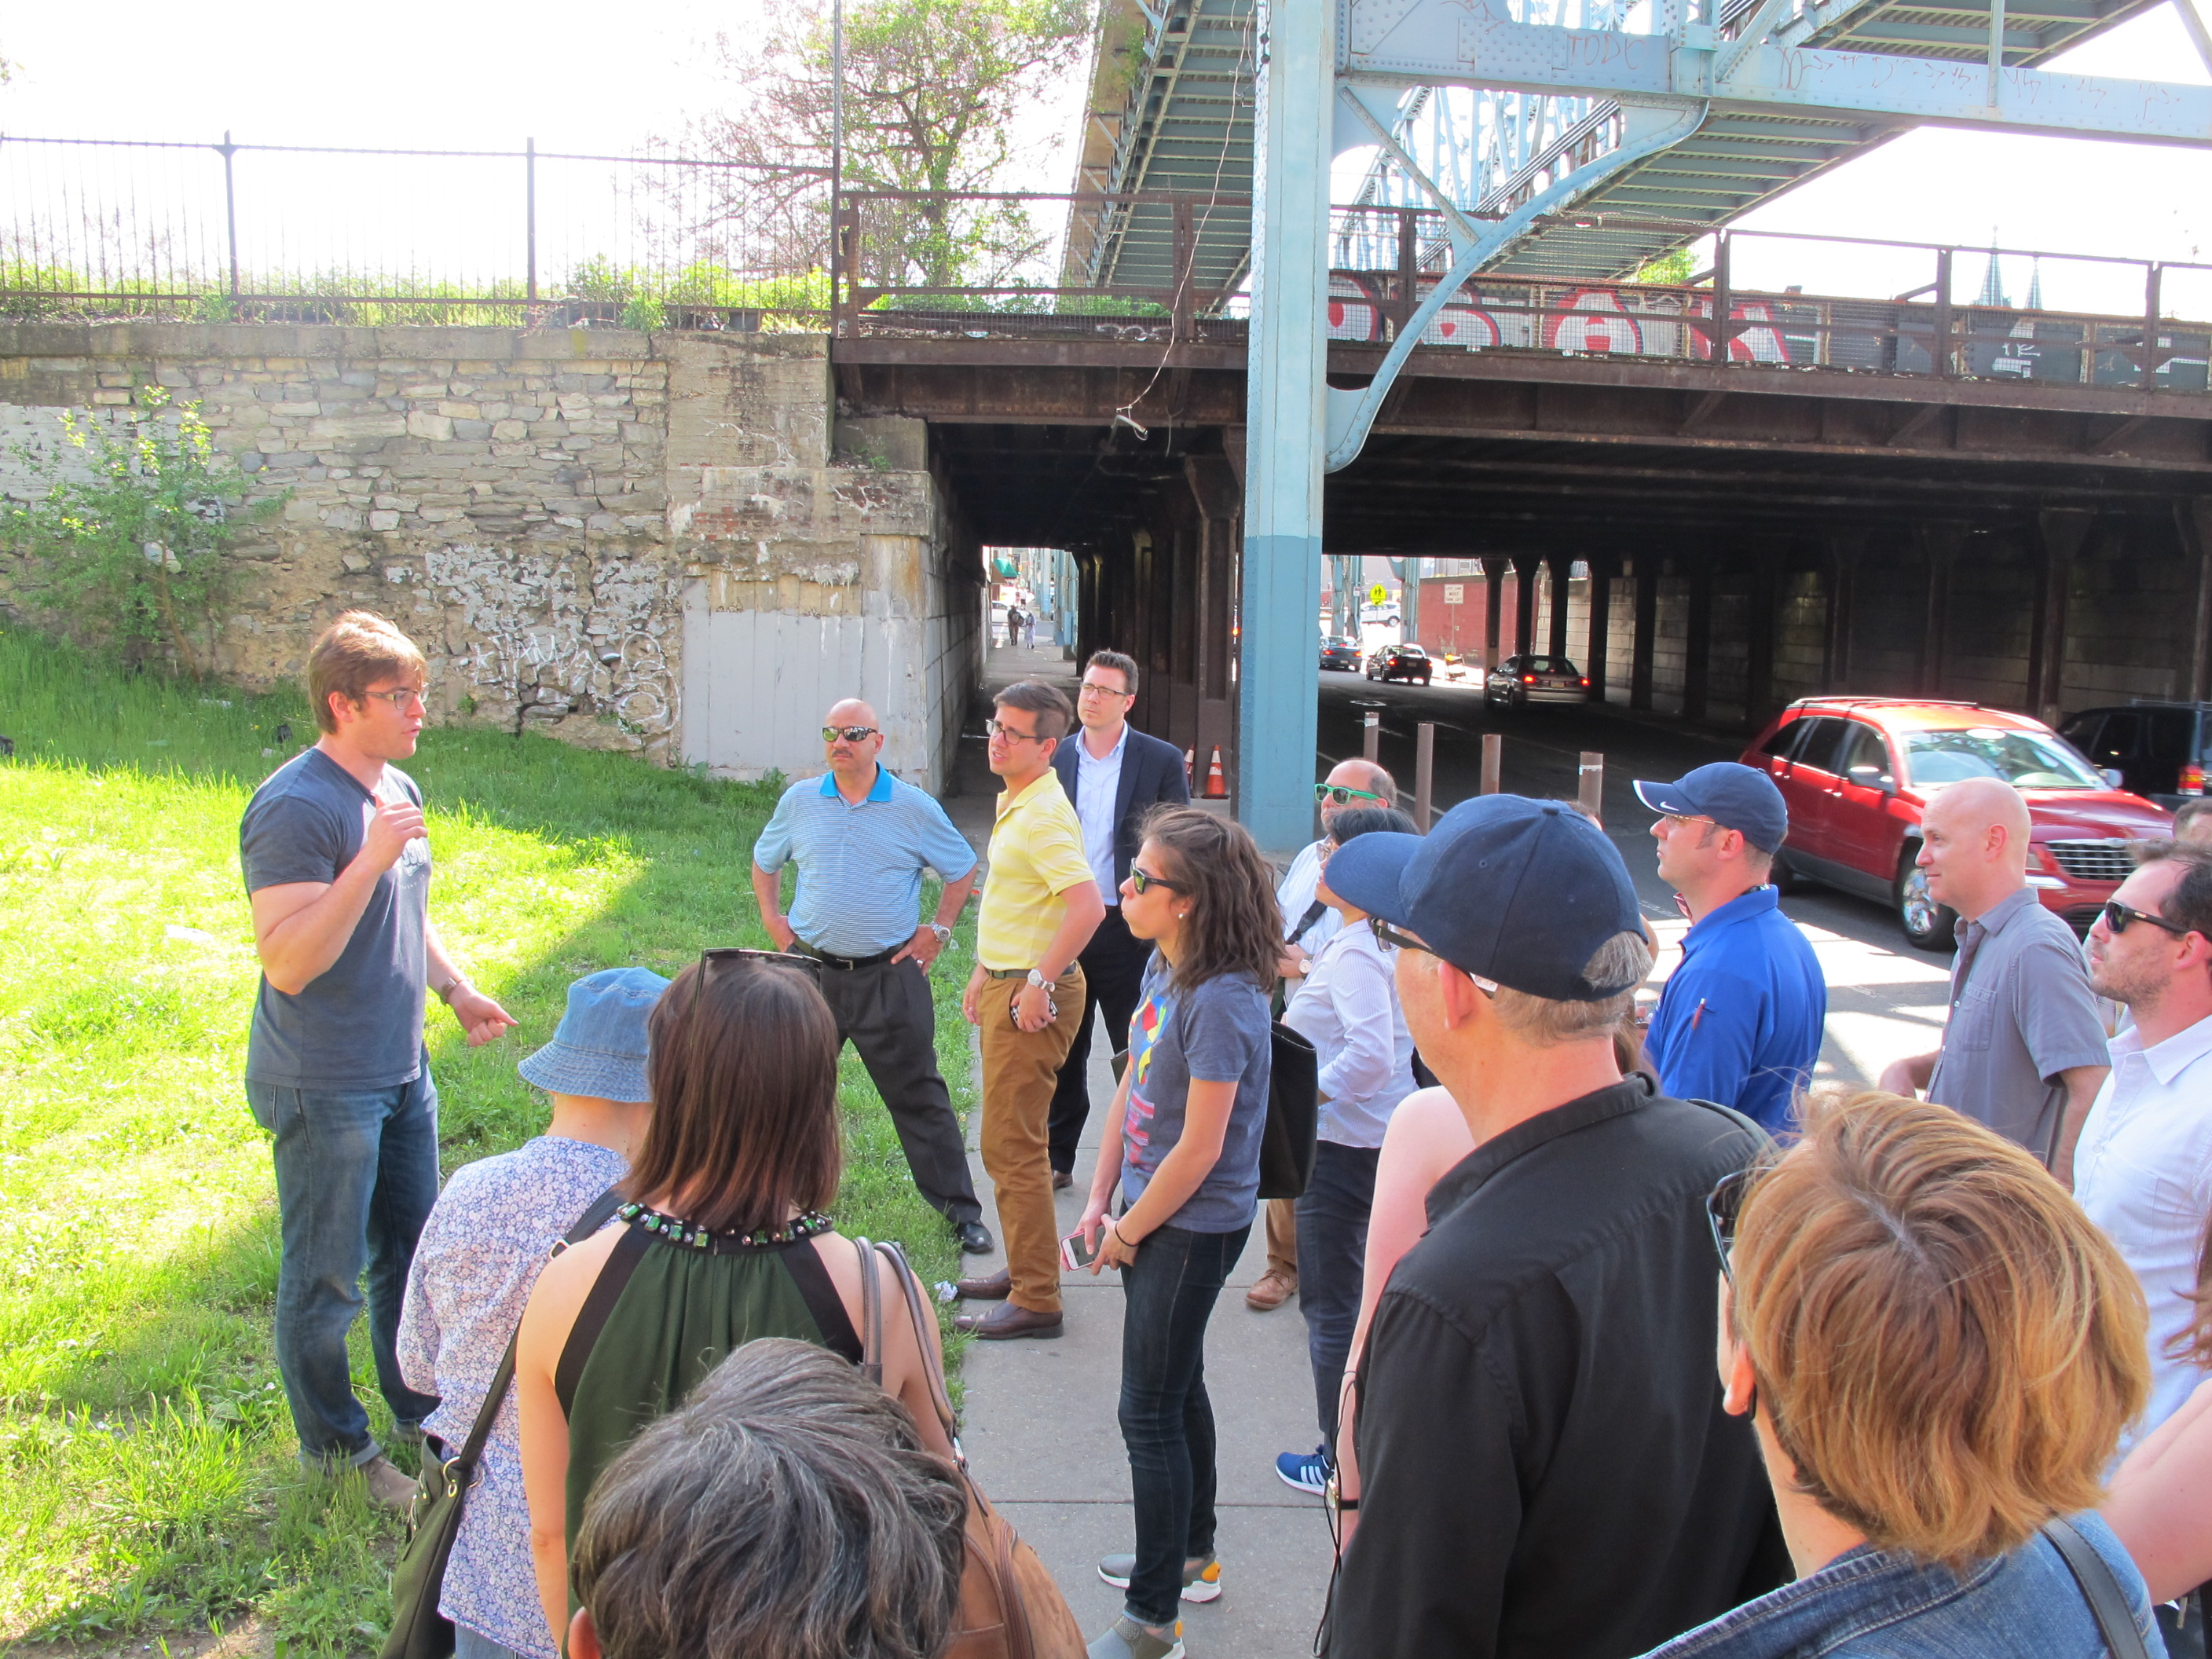 Sam Thomas discusses ways the Lehigh Viaduct is a boundary and barrier. | Ashley Hahn / PlanPhilly